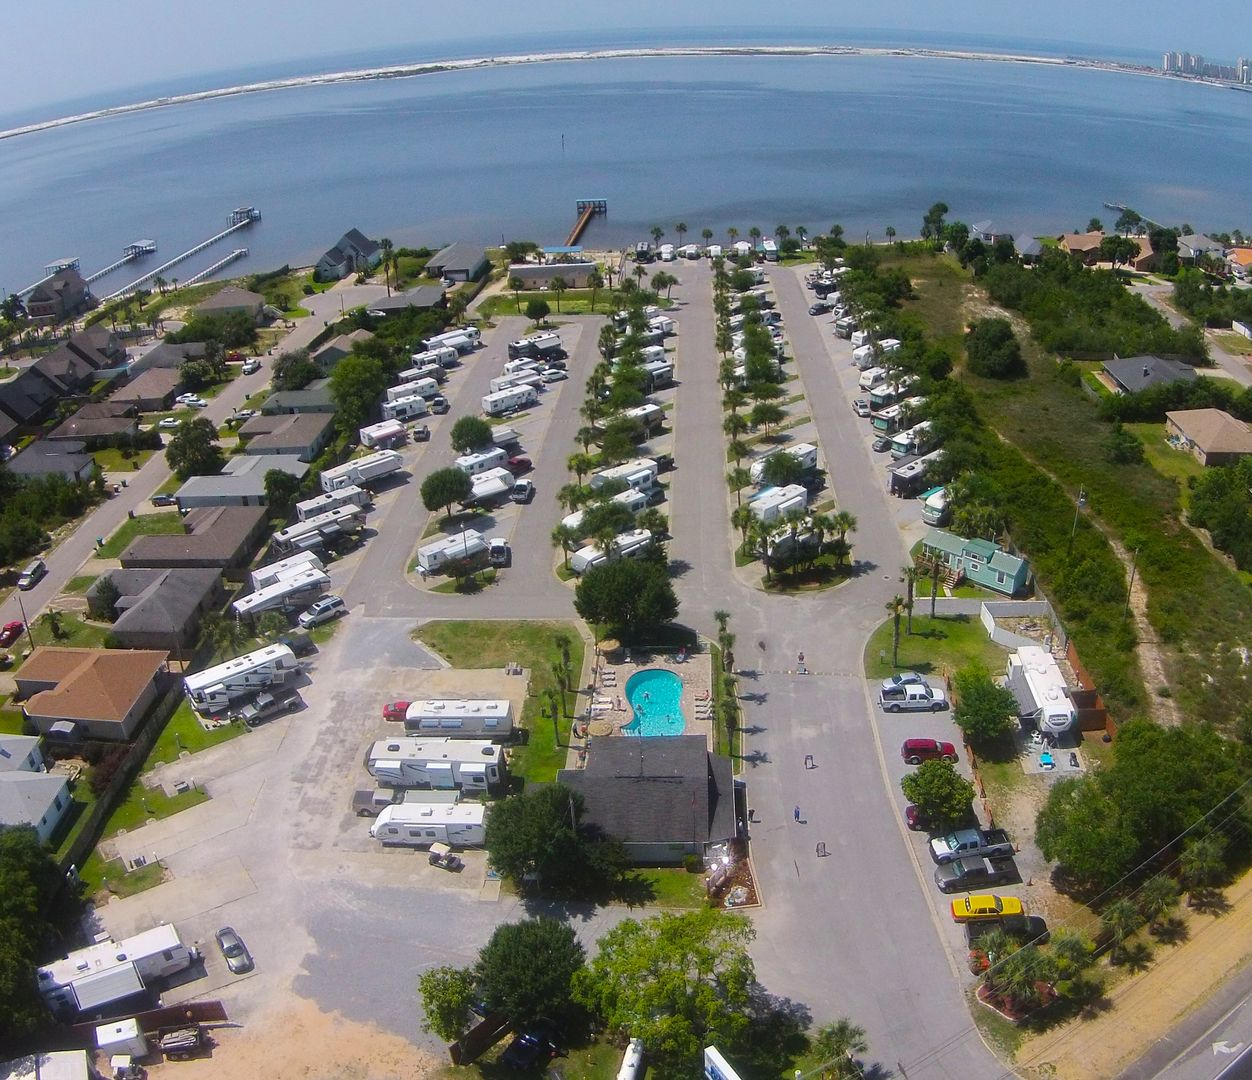 One Of The Top Rated Good Sam Rv Parks In Country Enjoy Our Private Beach On Sound Or A Mile Away Thrills Gulf